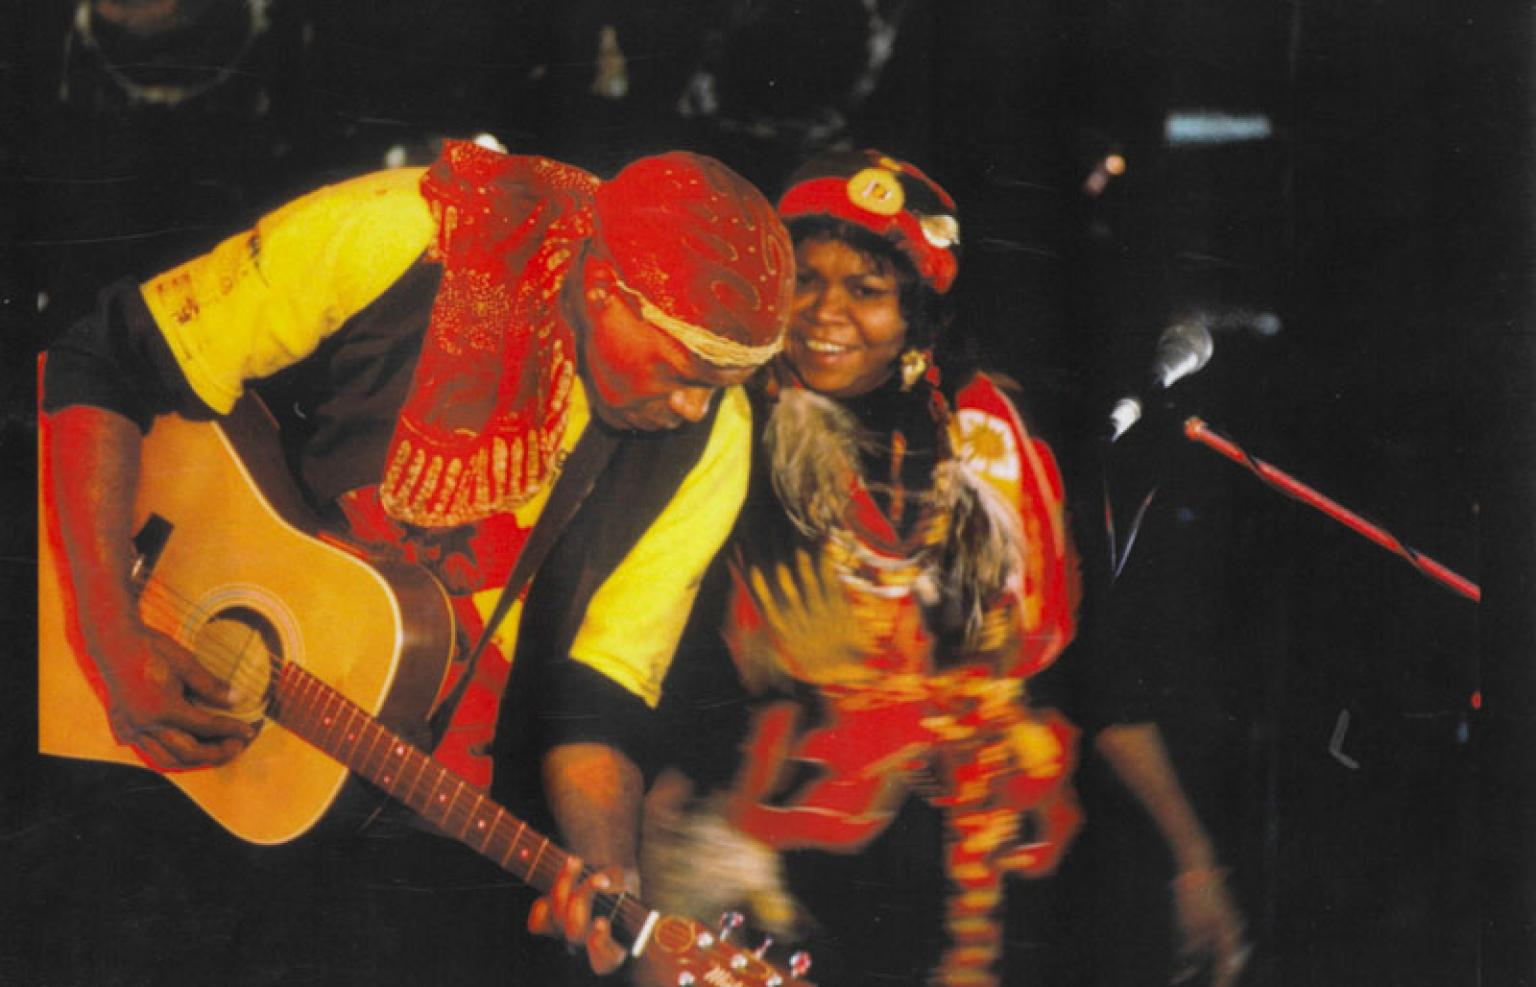 Archie Roach and Ruby Hunter performing on stage together. Archie is playing guitar and Ruby is smiling and they are leaning in towards each other.